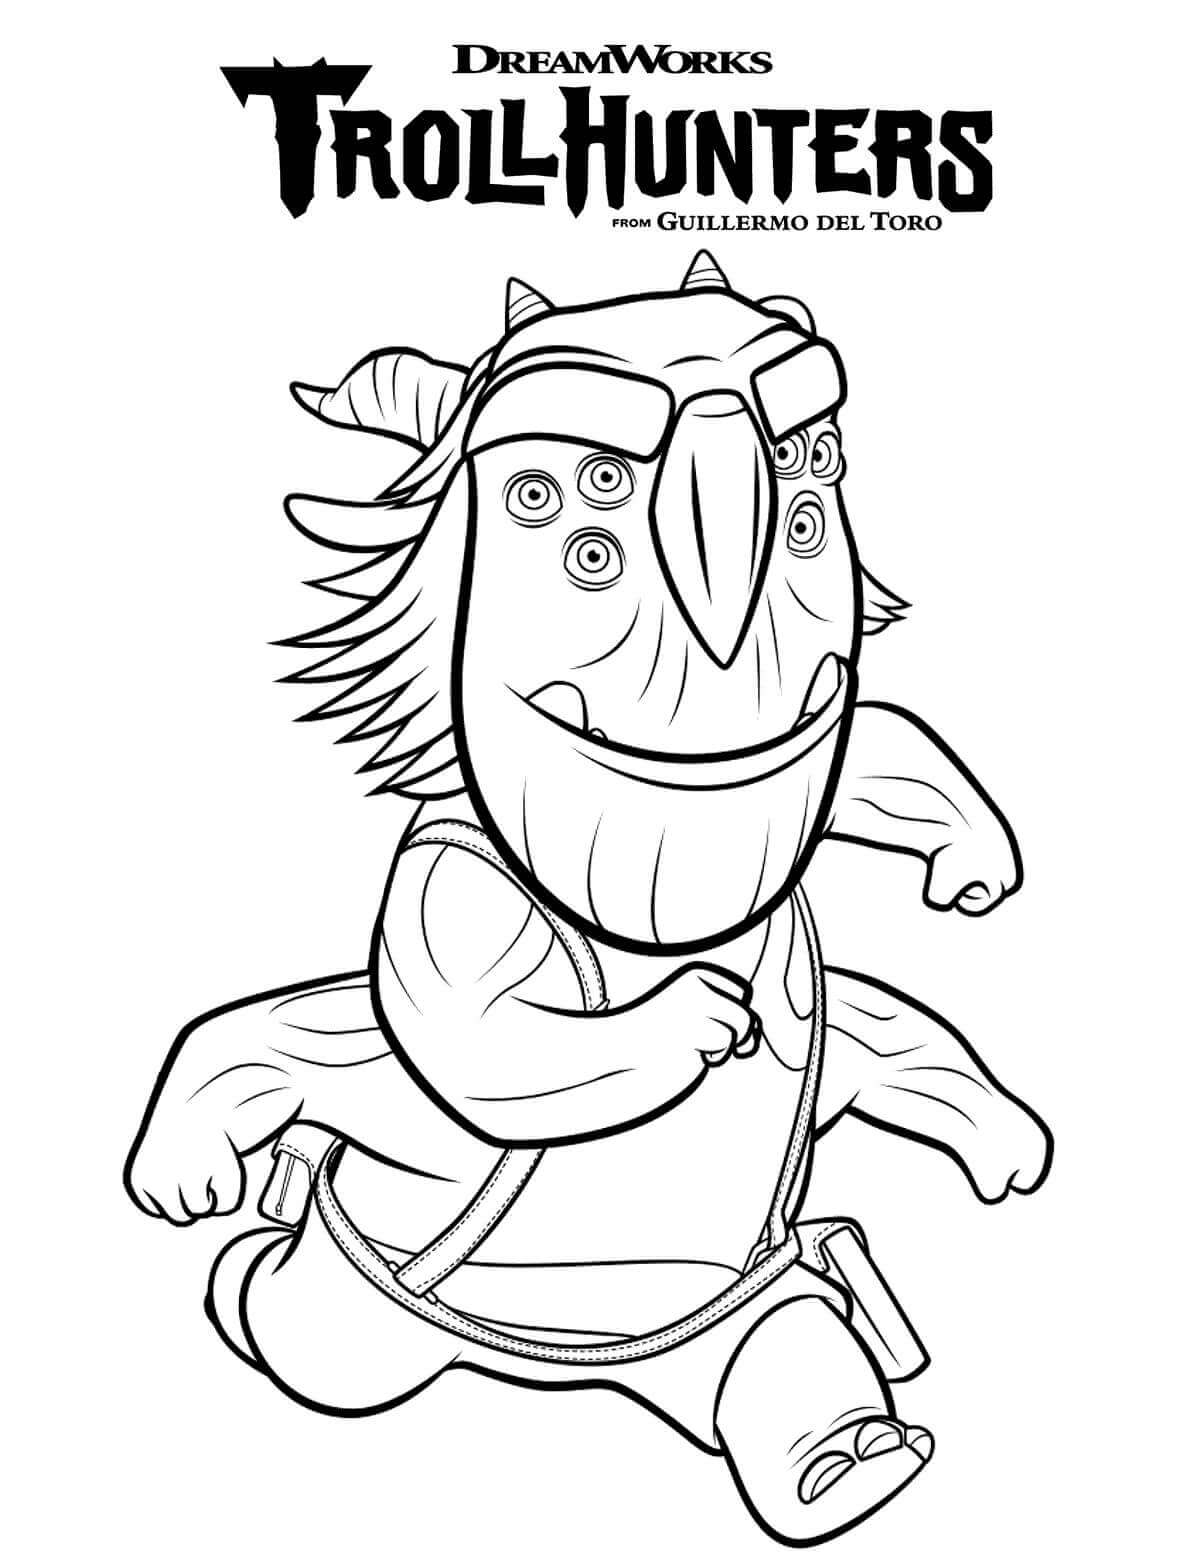 Blinkous Galadriga TrollHunters Coloring Page